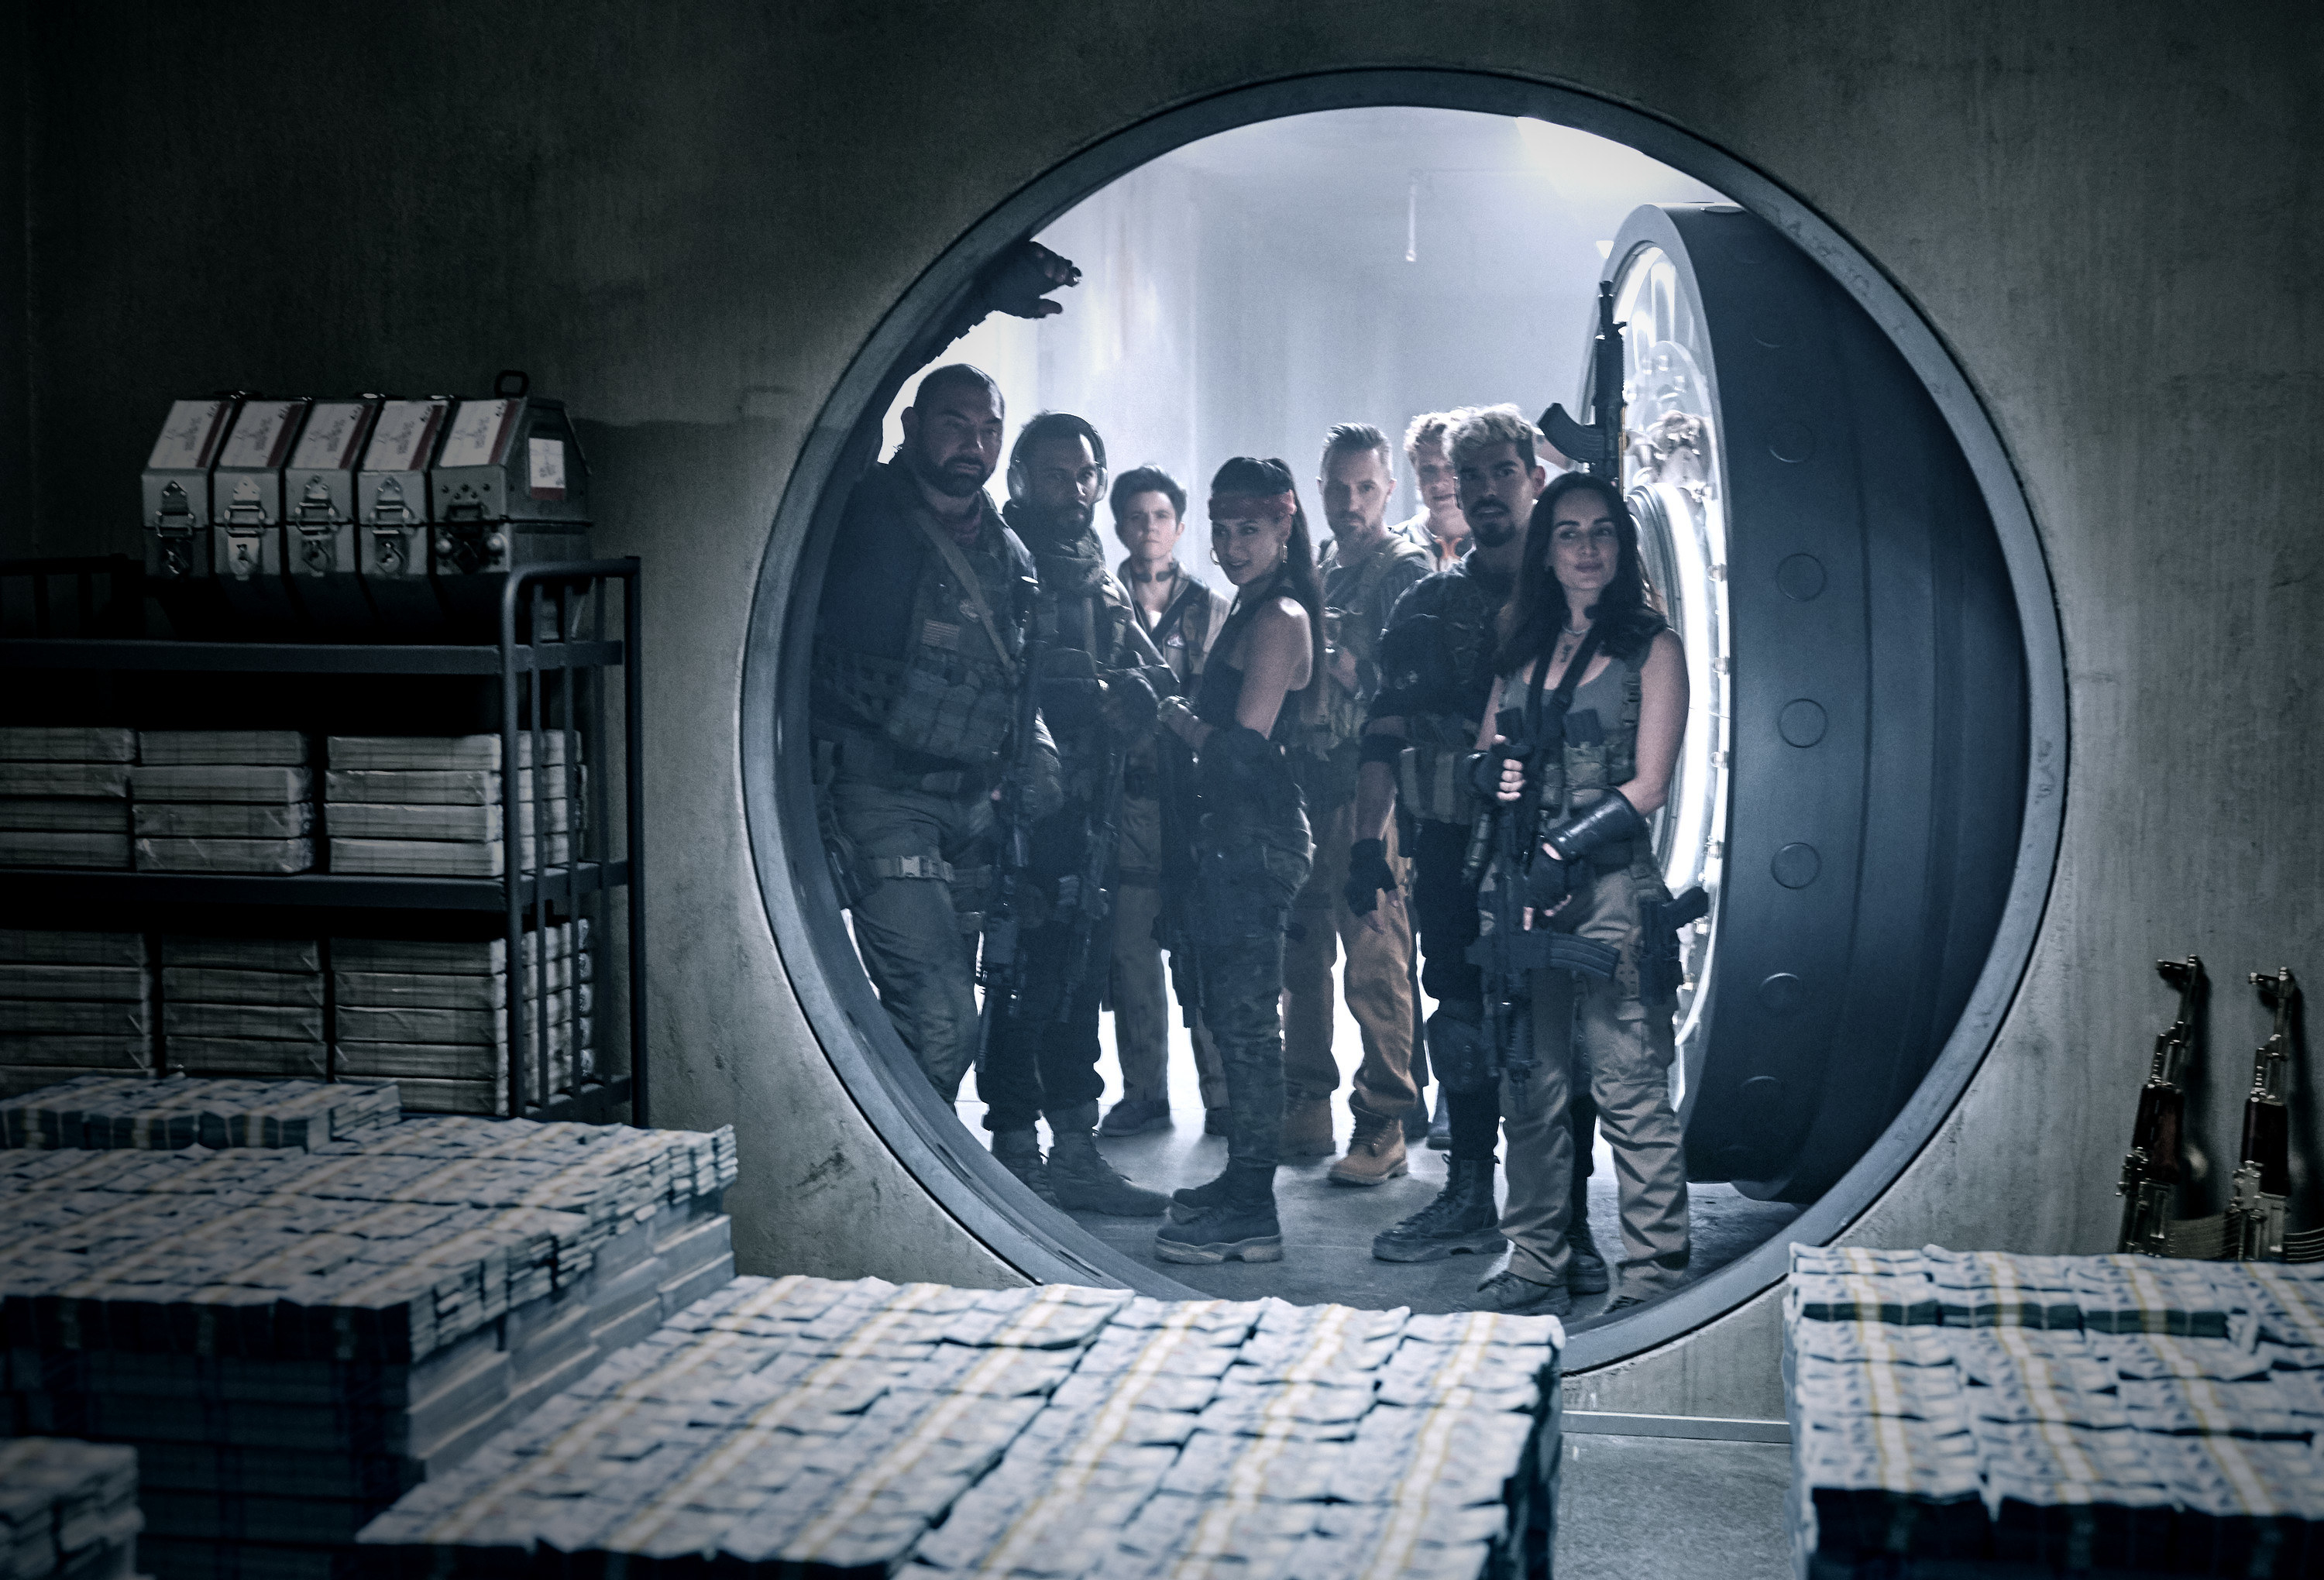 Dave Bautista as Scott Ward, Omari Hardwick as Vanderohe, Tig Notaro as Peters, Samantha Win as Chambers, Colin Jones as Damon, Matthias Schweighöfer as Dieter, Raúl Castillo as Mickey Guzman, and Ana de la Reguera as Cruz